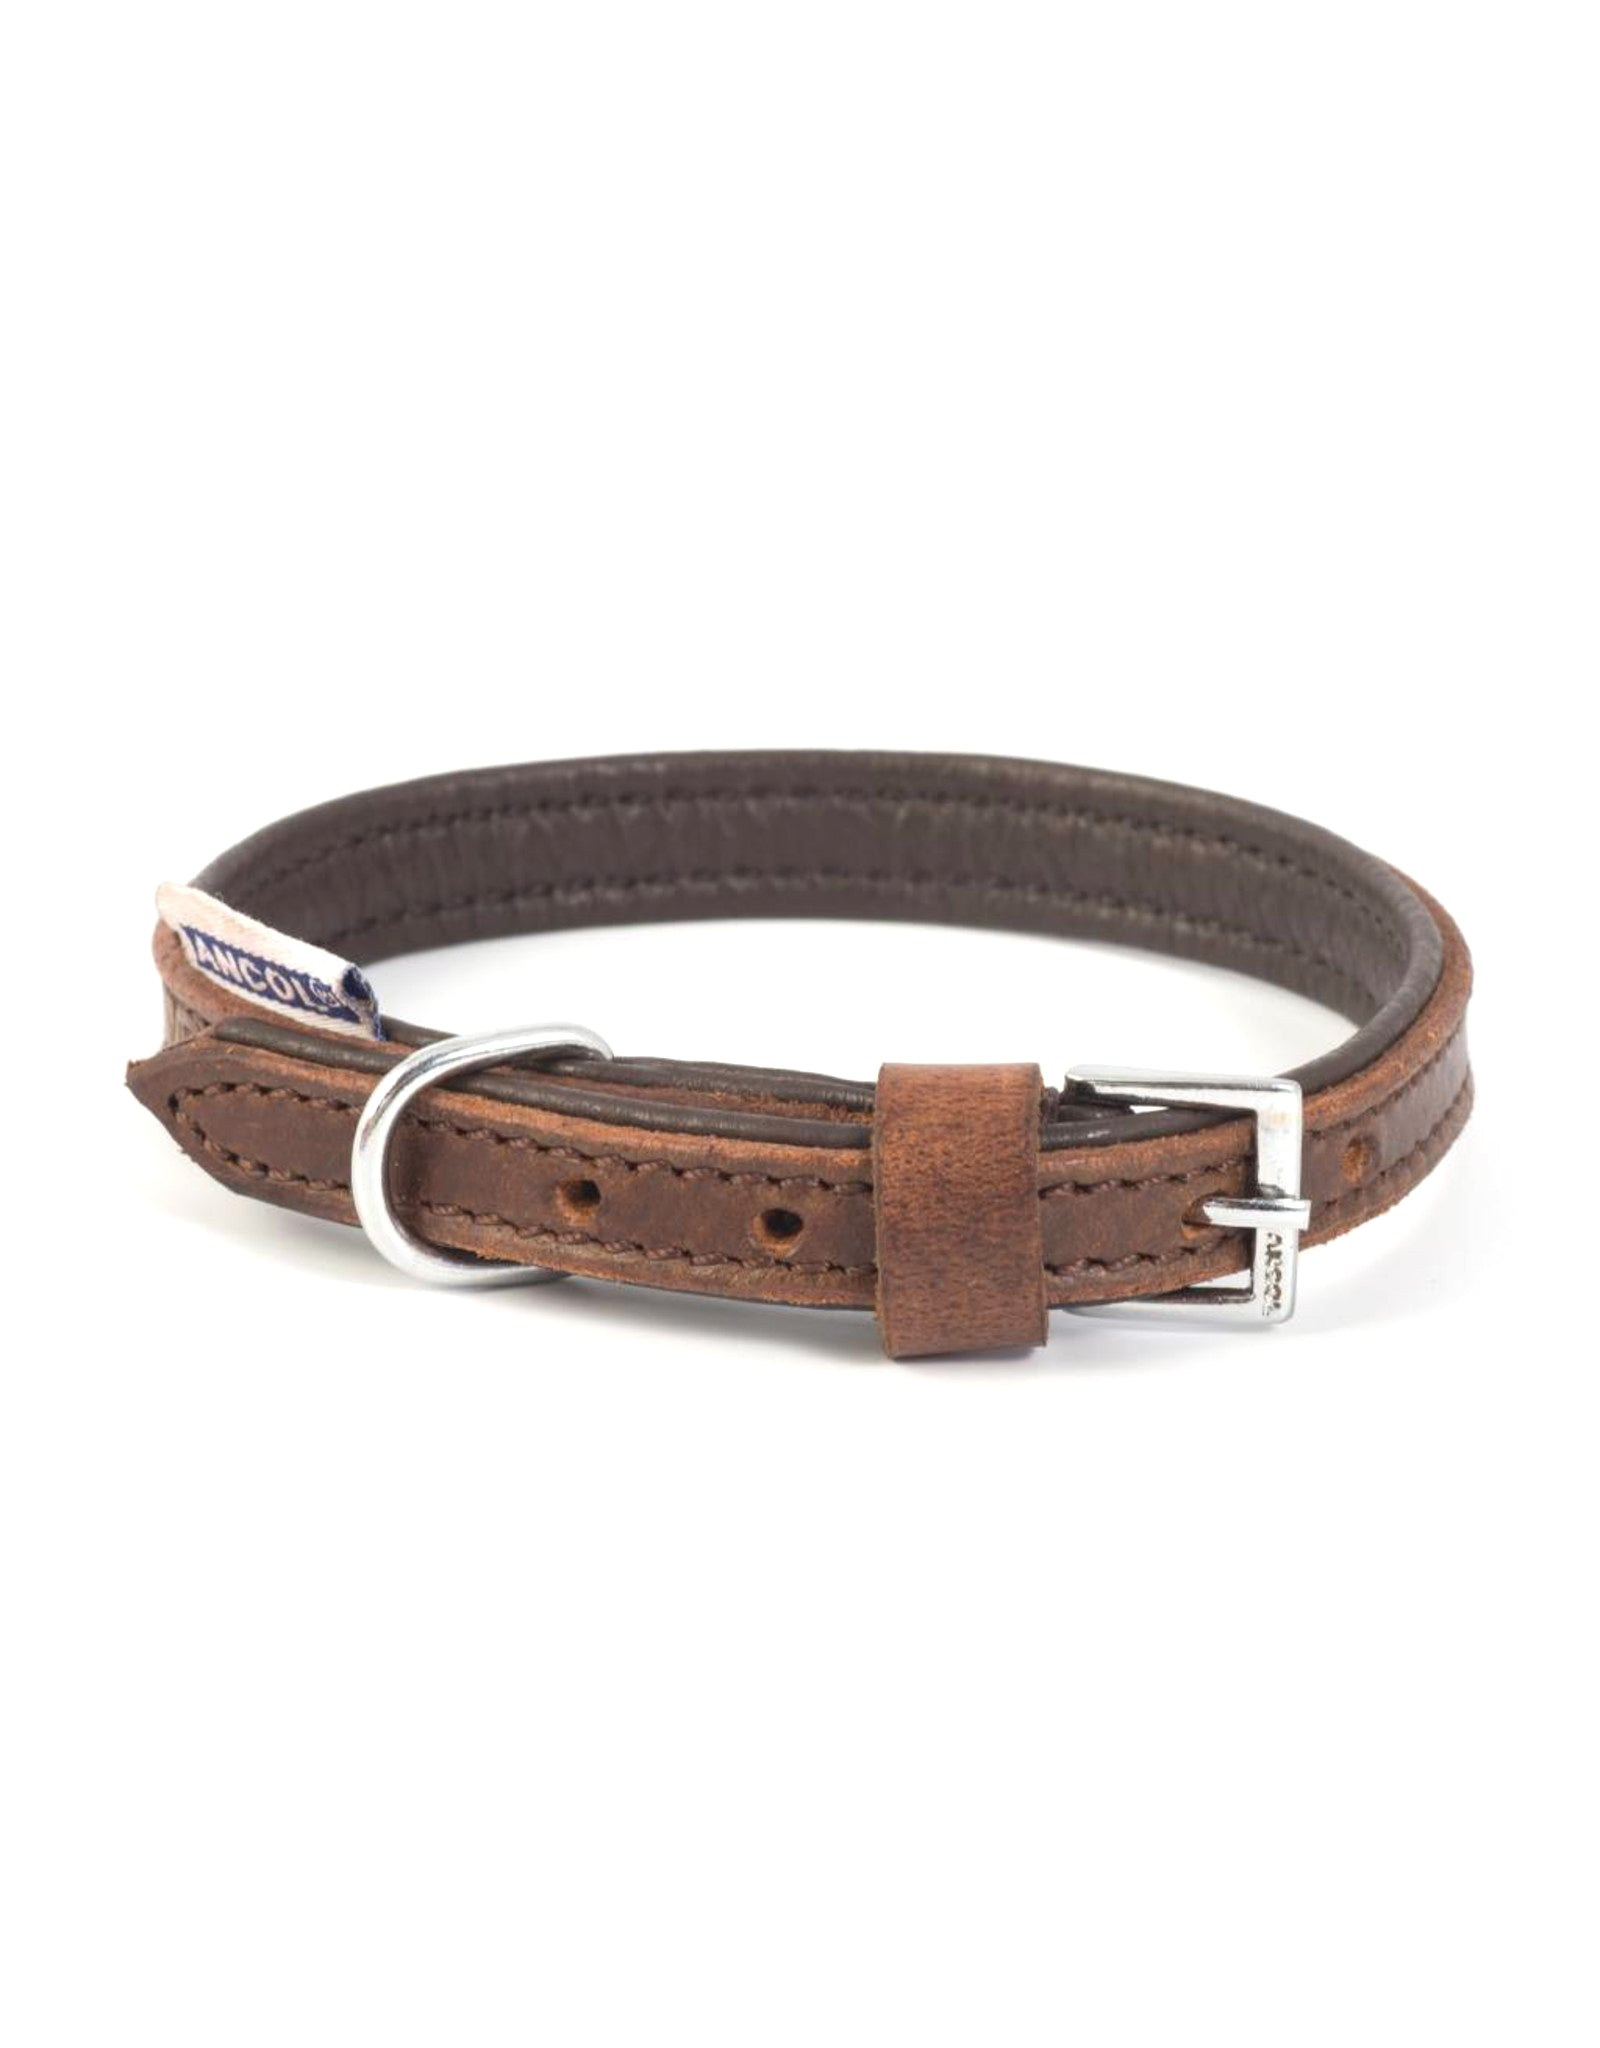 Ancol Vintage Padded Leather Collar